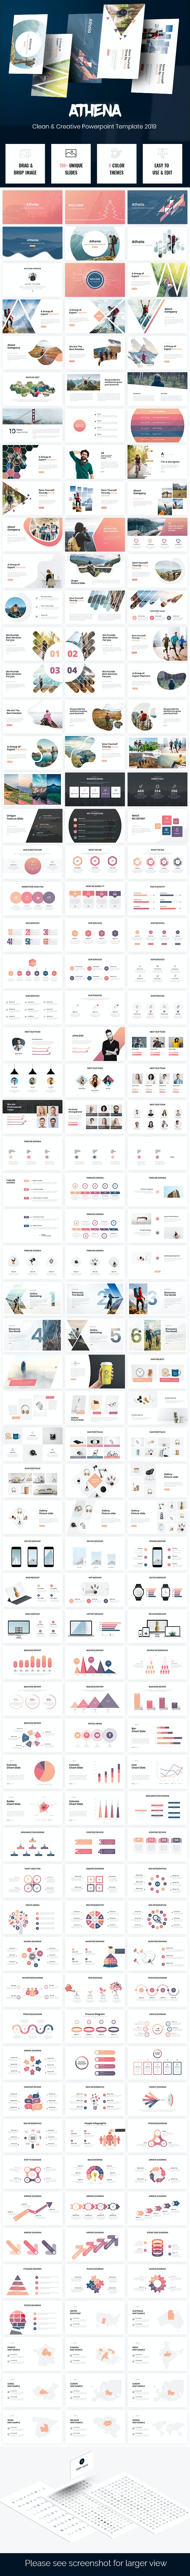 Athena - Creative Powerpoint Template 2019 - Creative PowerPoint Templates